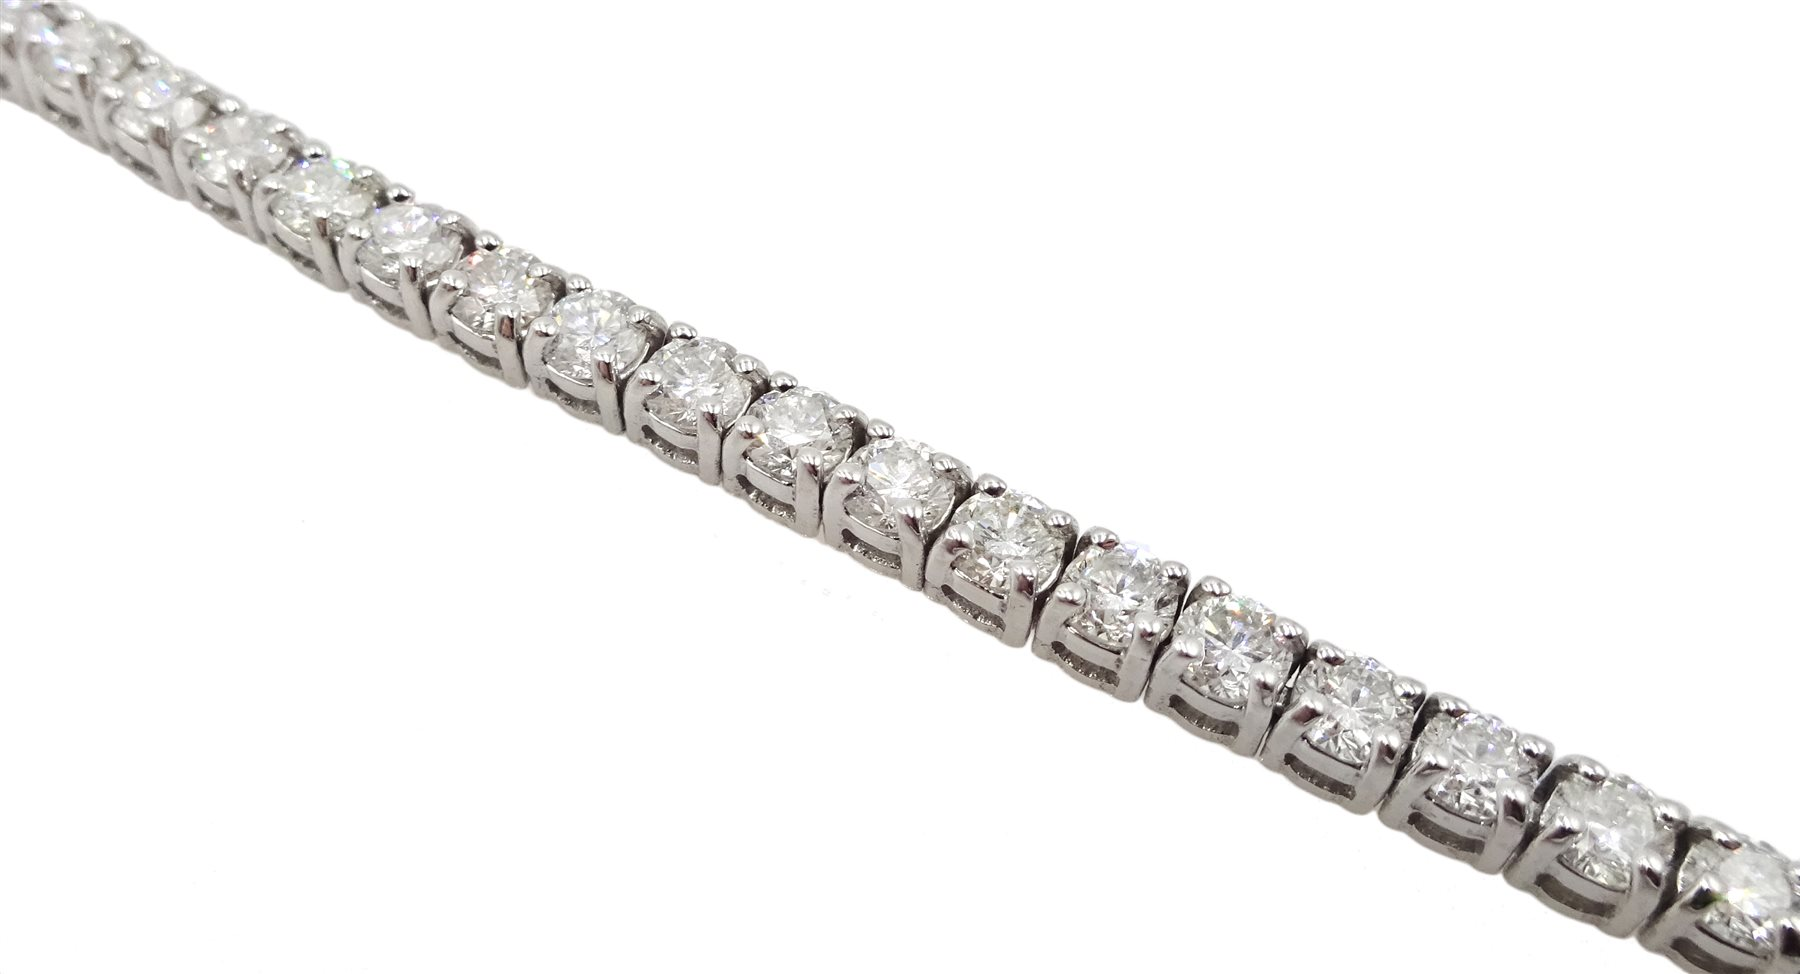 18ct white gold diamond line bracelet, stamped 750 diamond total weight approx 5.18 carat, free UK - Image 4 of 5